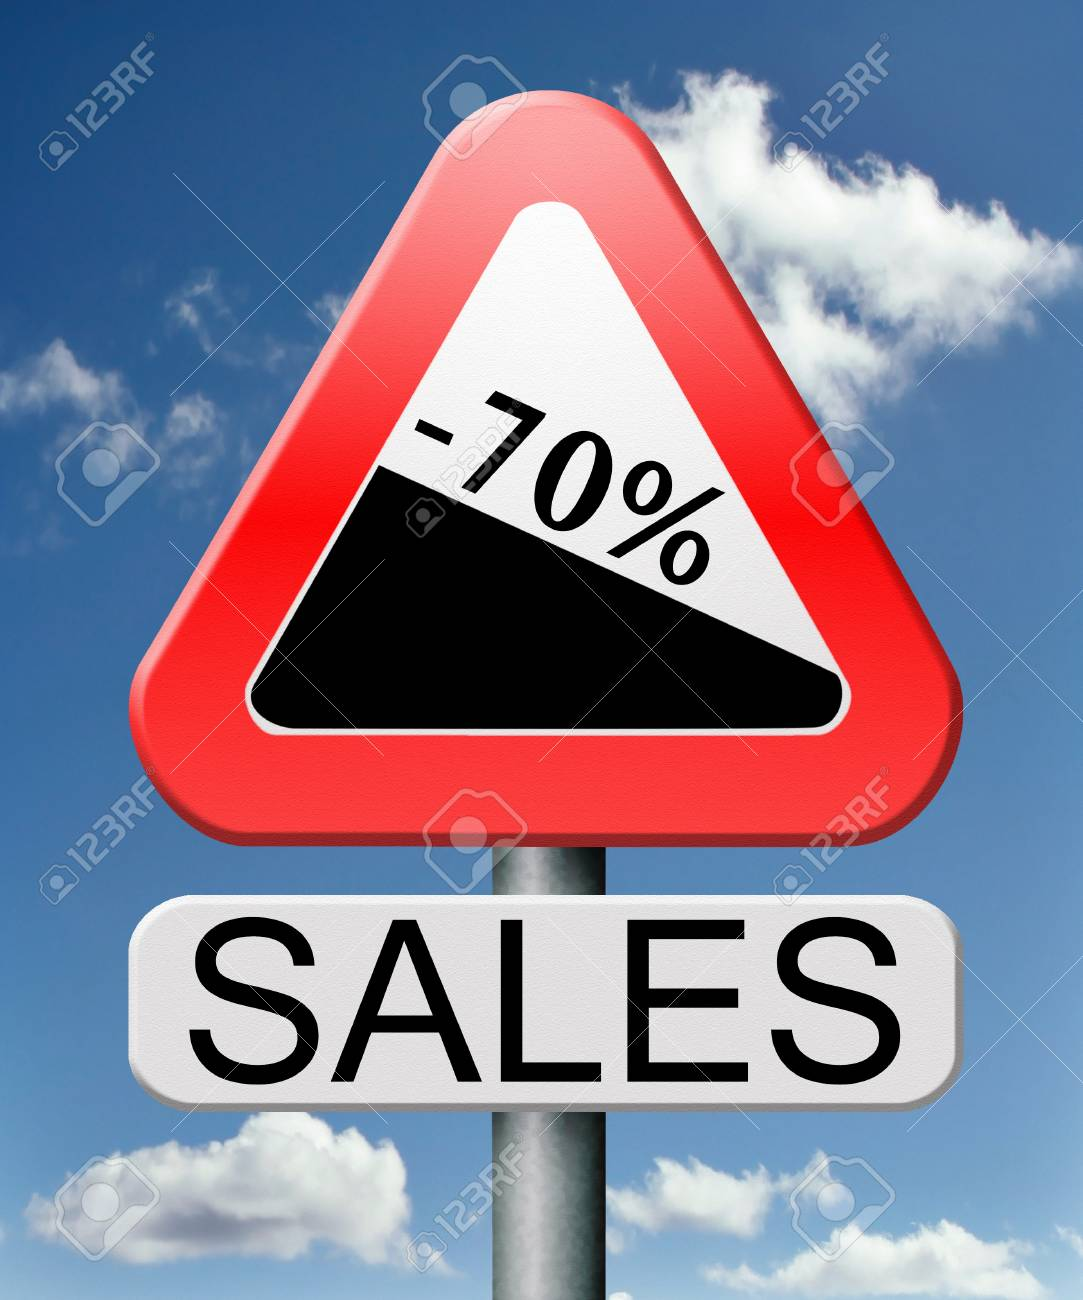 sale 70% off winter off for summer sales text on road signconcept for online web shop internet shopping icon or button. Bargain discount or reduction for extra low price promotion. Stock Photo - 18534841